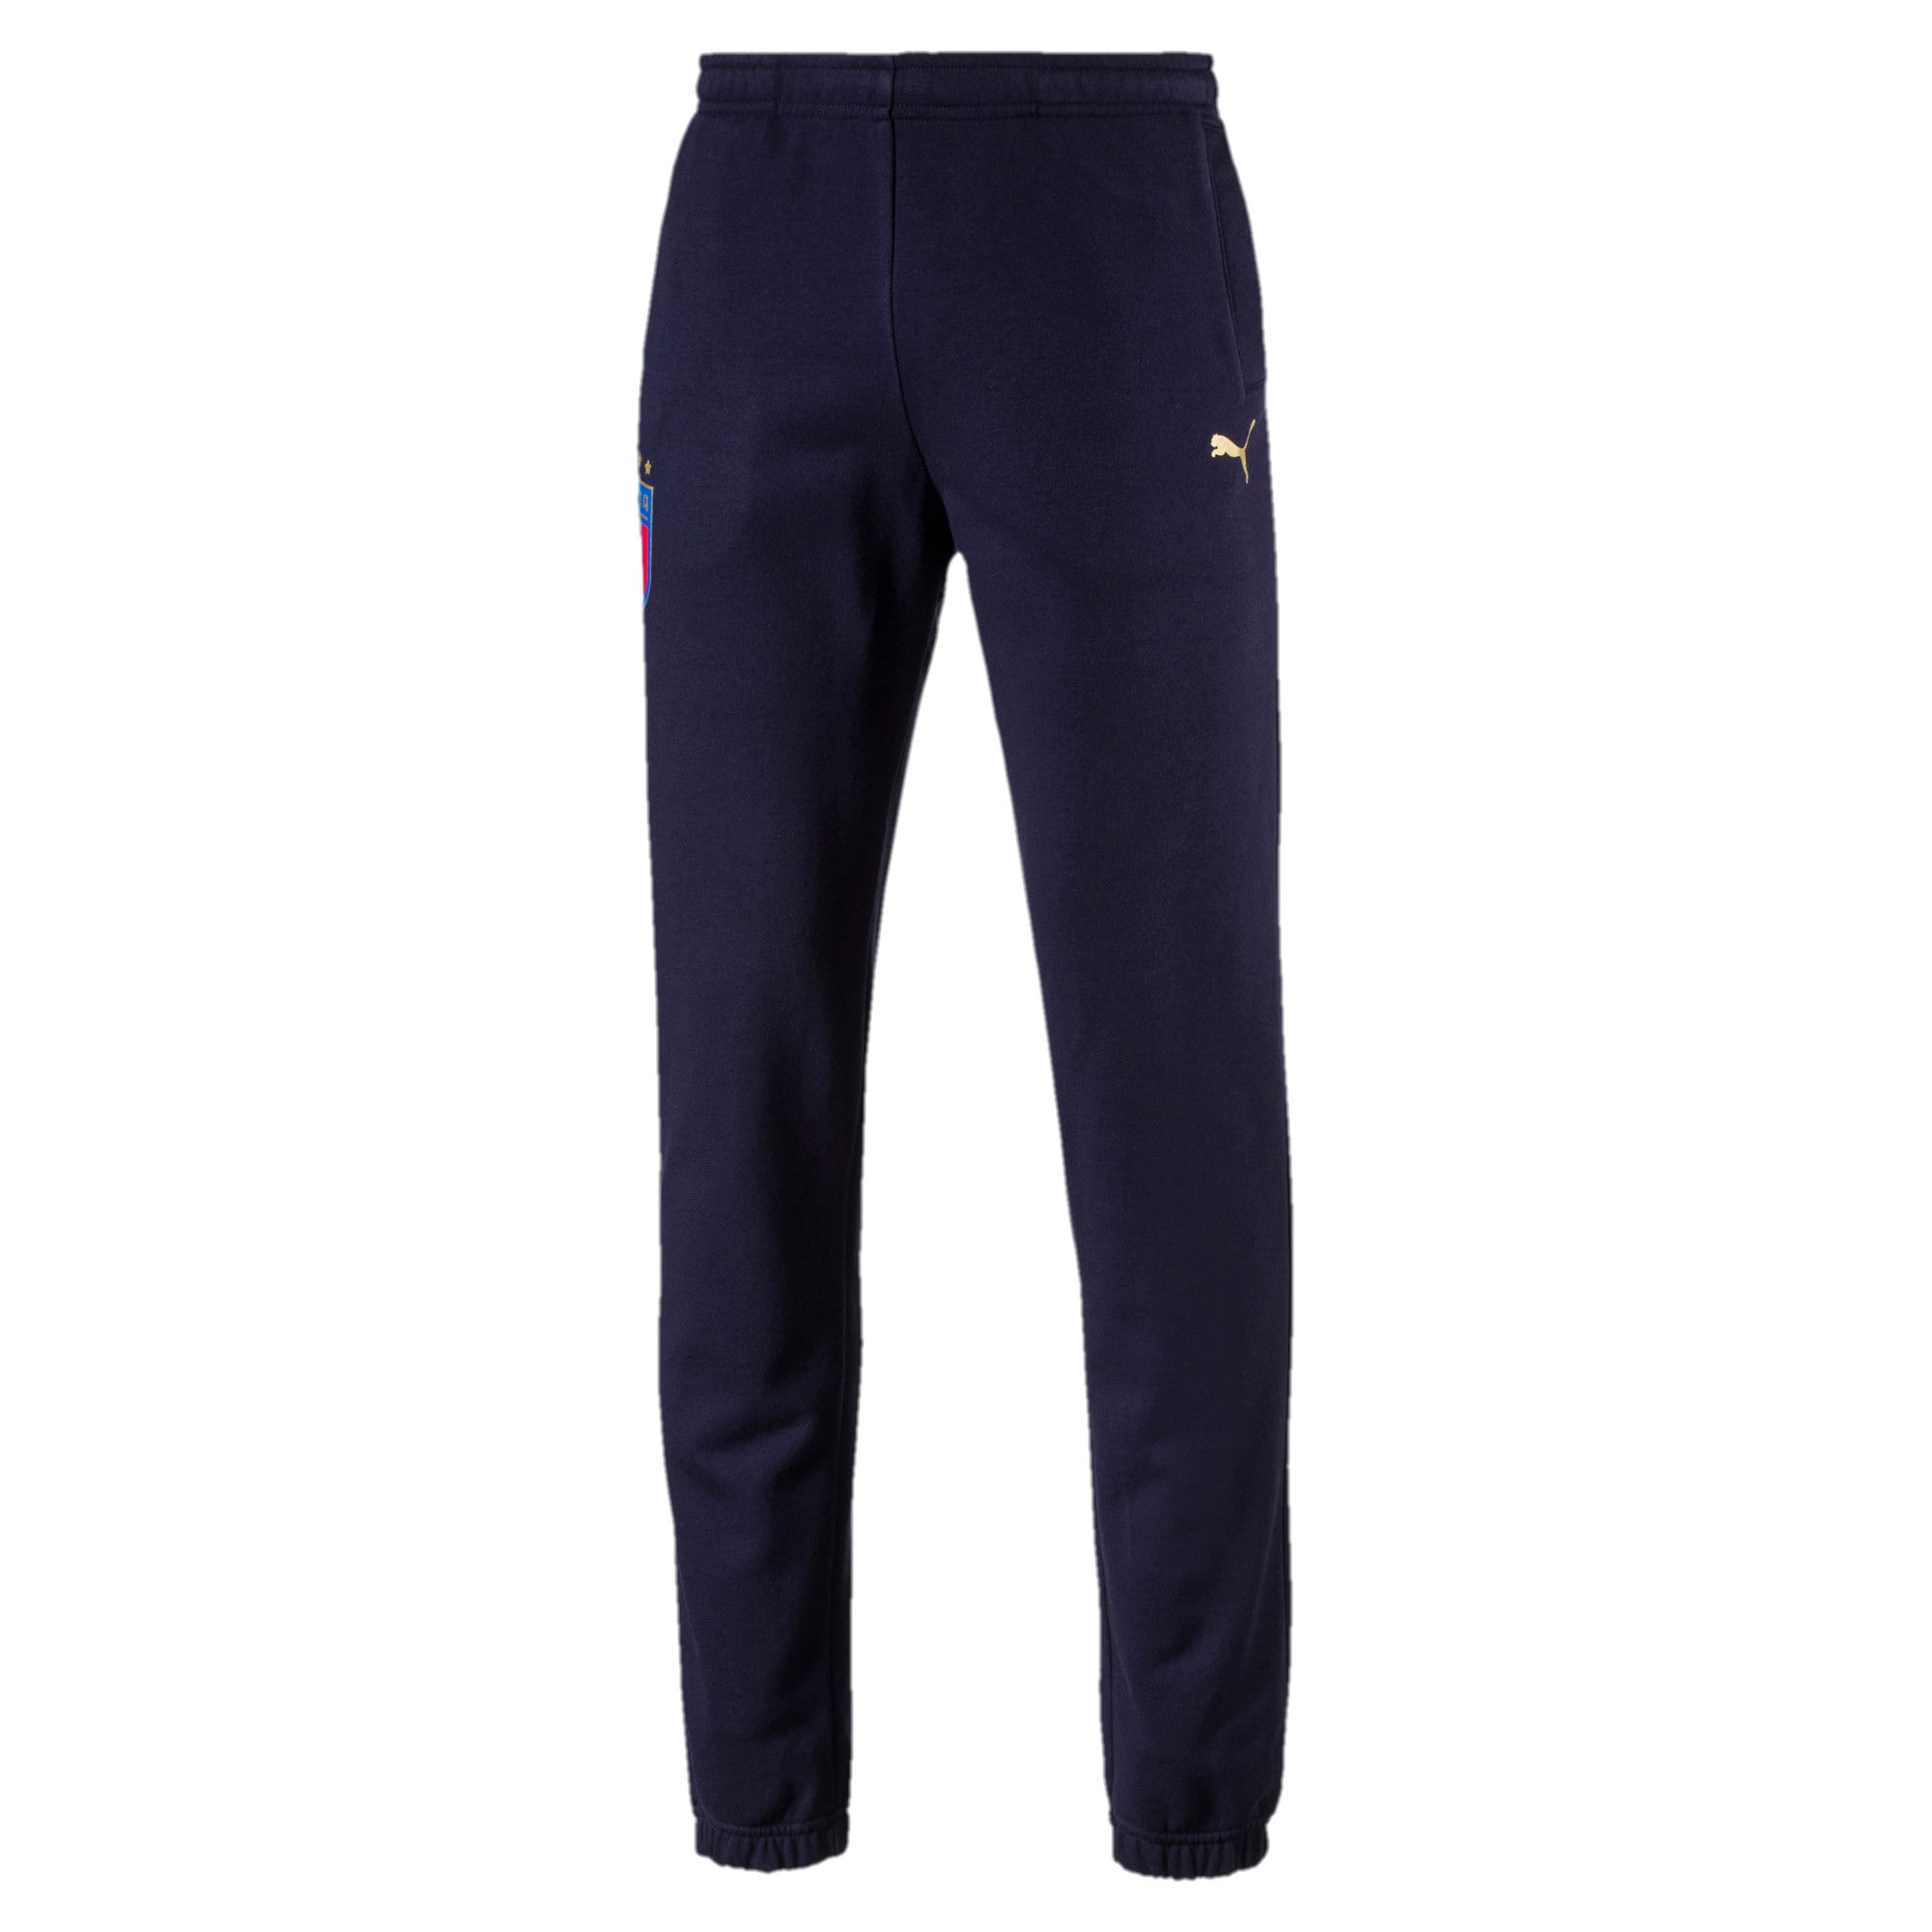 Thumbnail 1 of FIGC Men's Italia Sweat Pants, Peacoat, medium